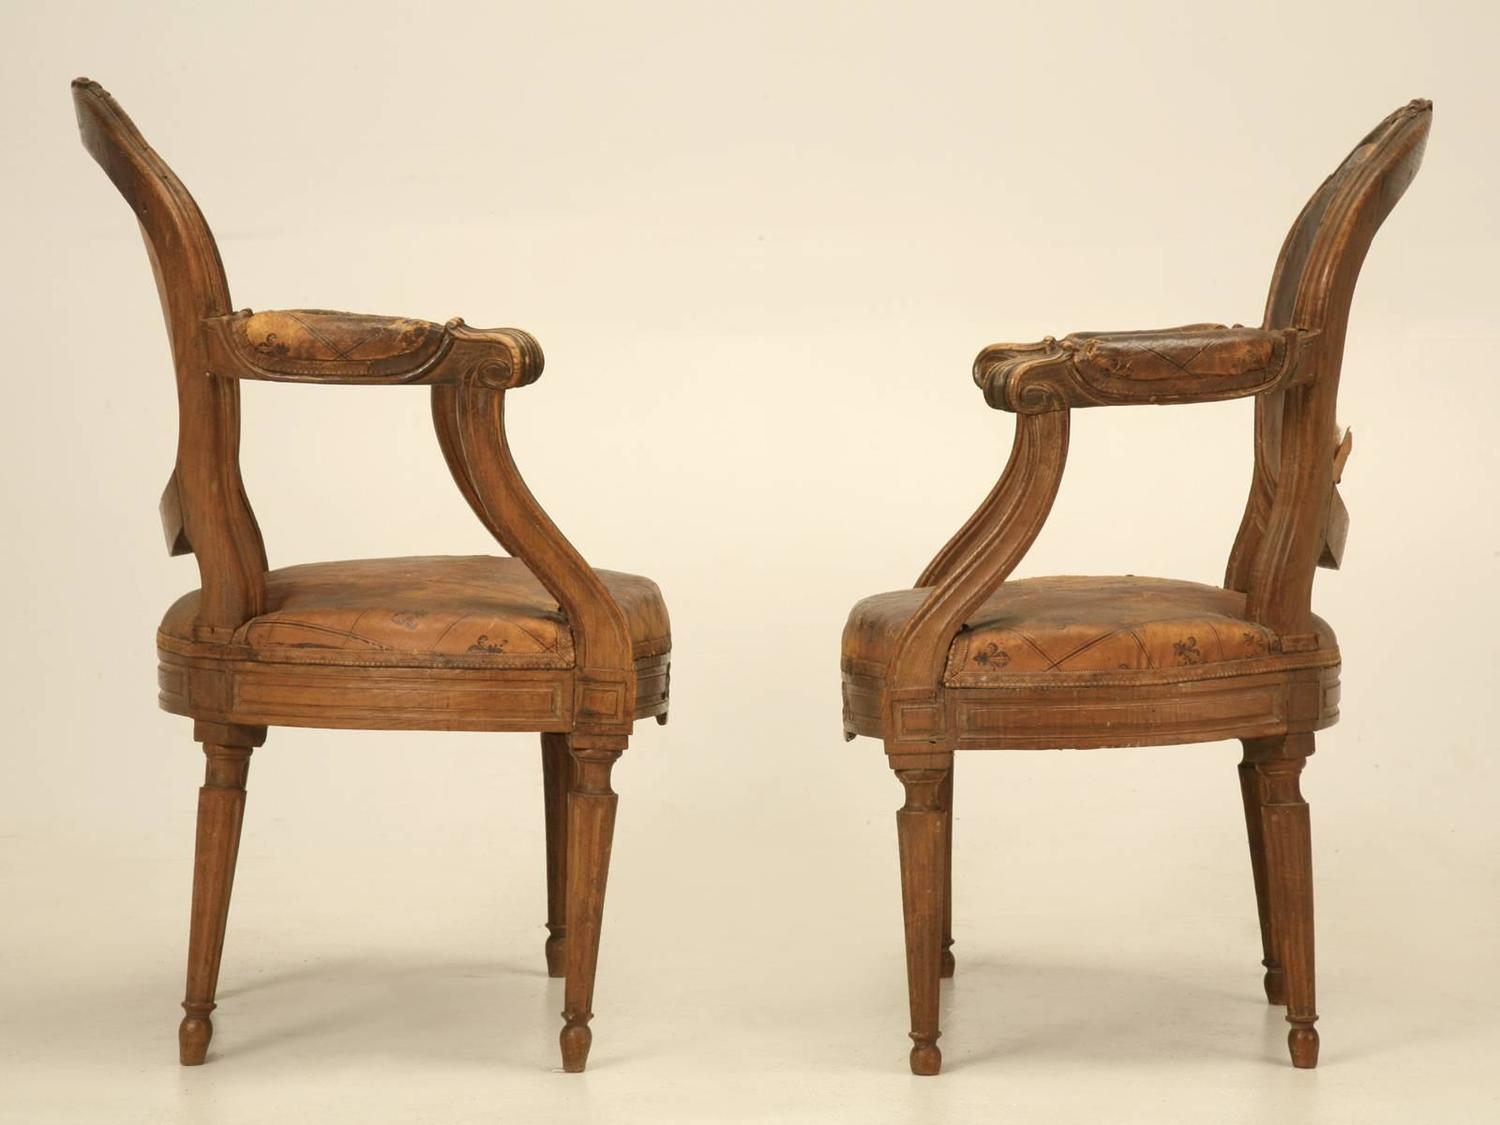 French louis xvi style armchairs in original leather for sale at